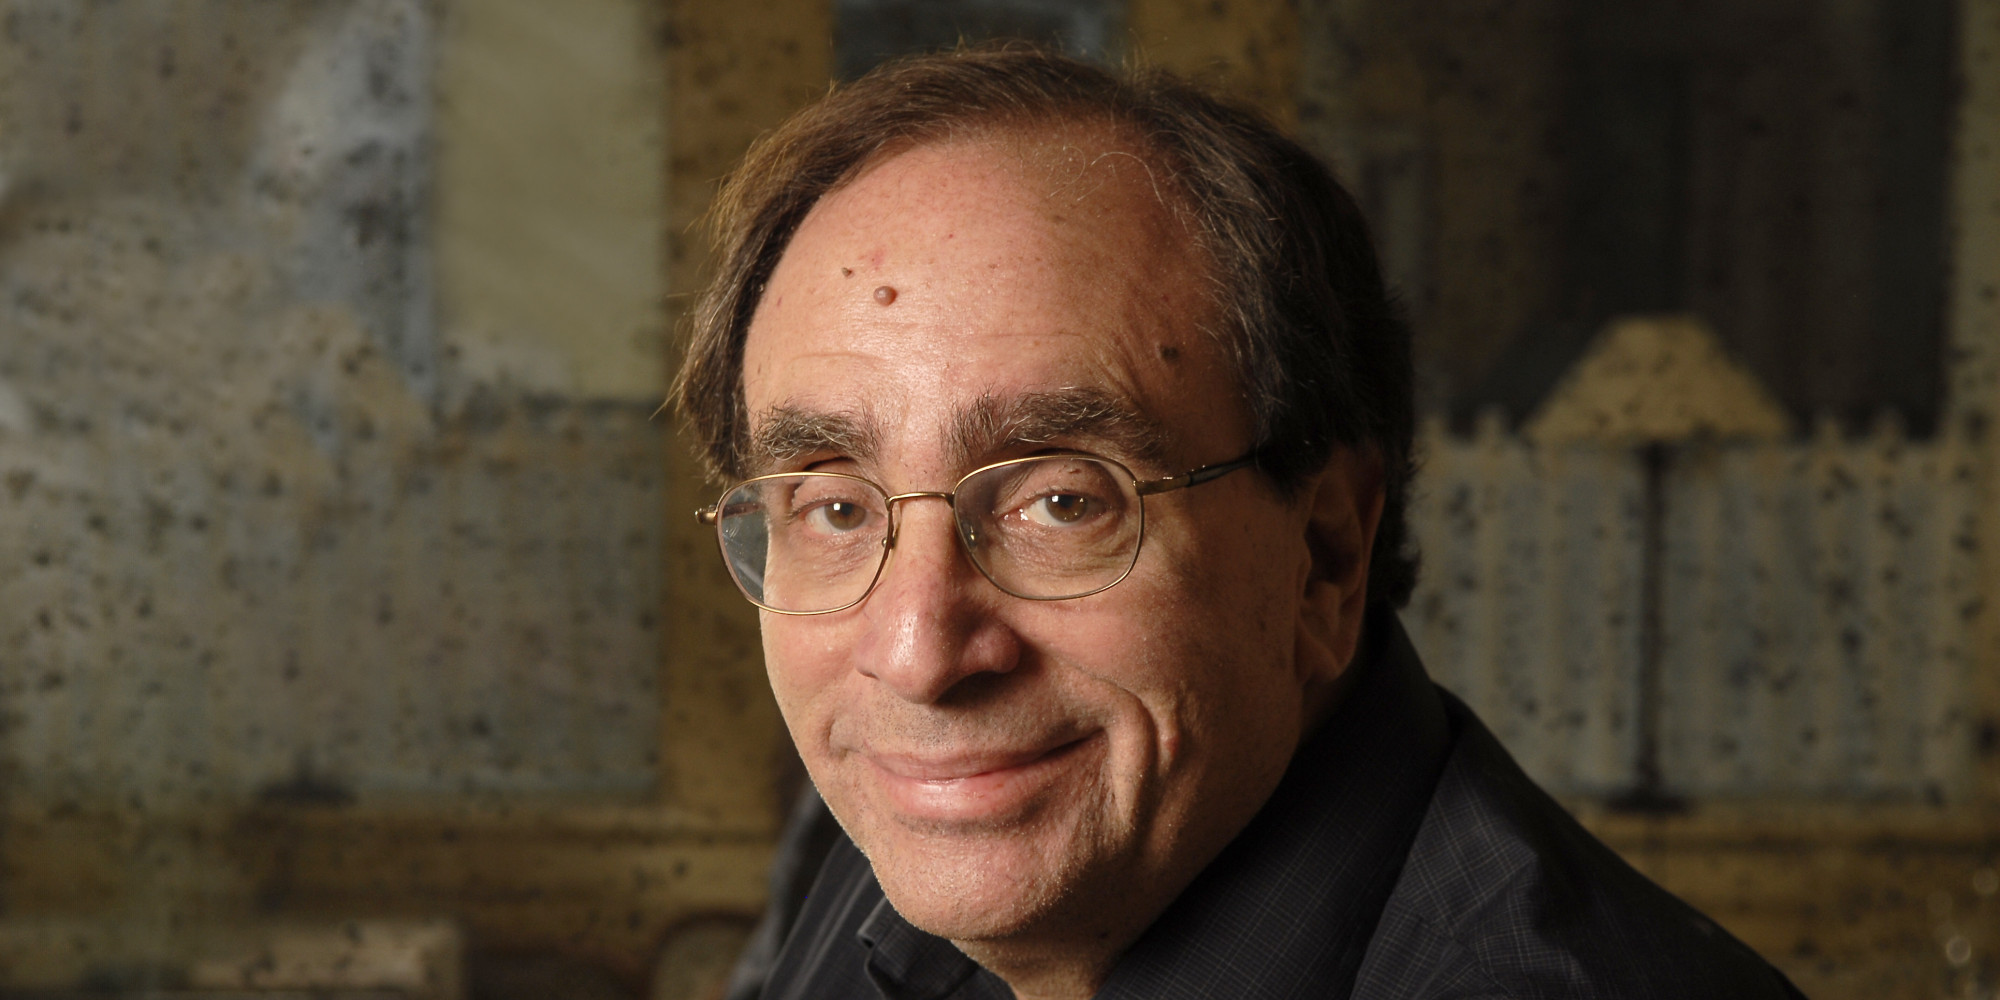 RL Stine at http://www.huffingtonpost.com/james-preller-/how-i-survived-a-night-in_b_4181105.html